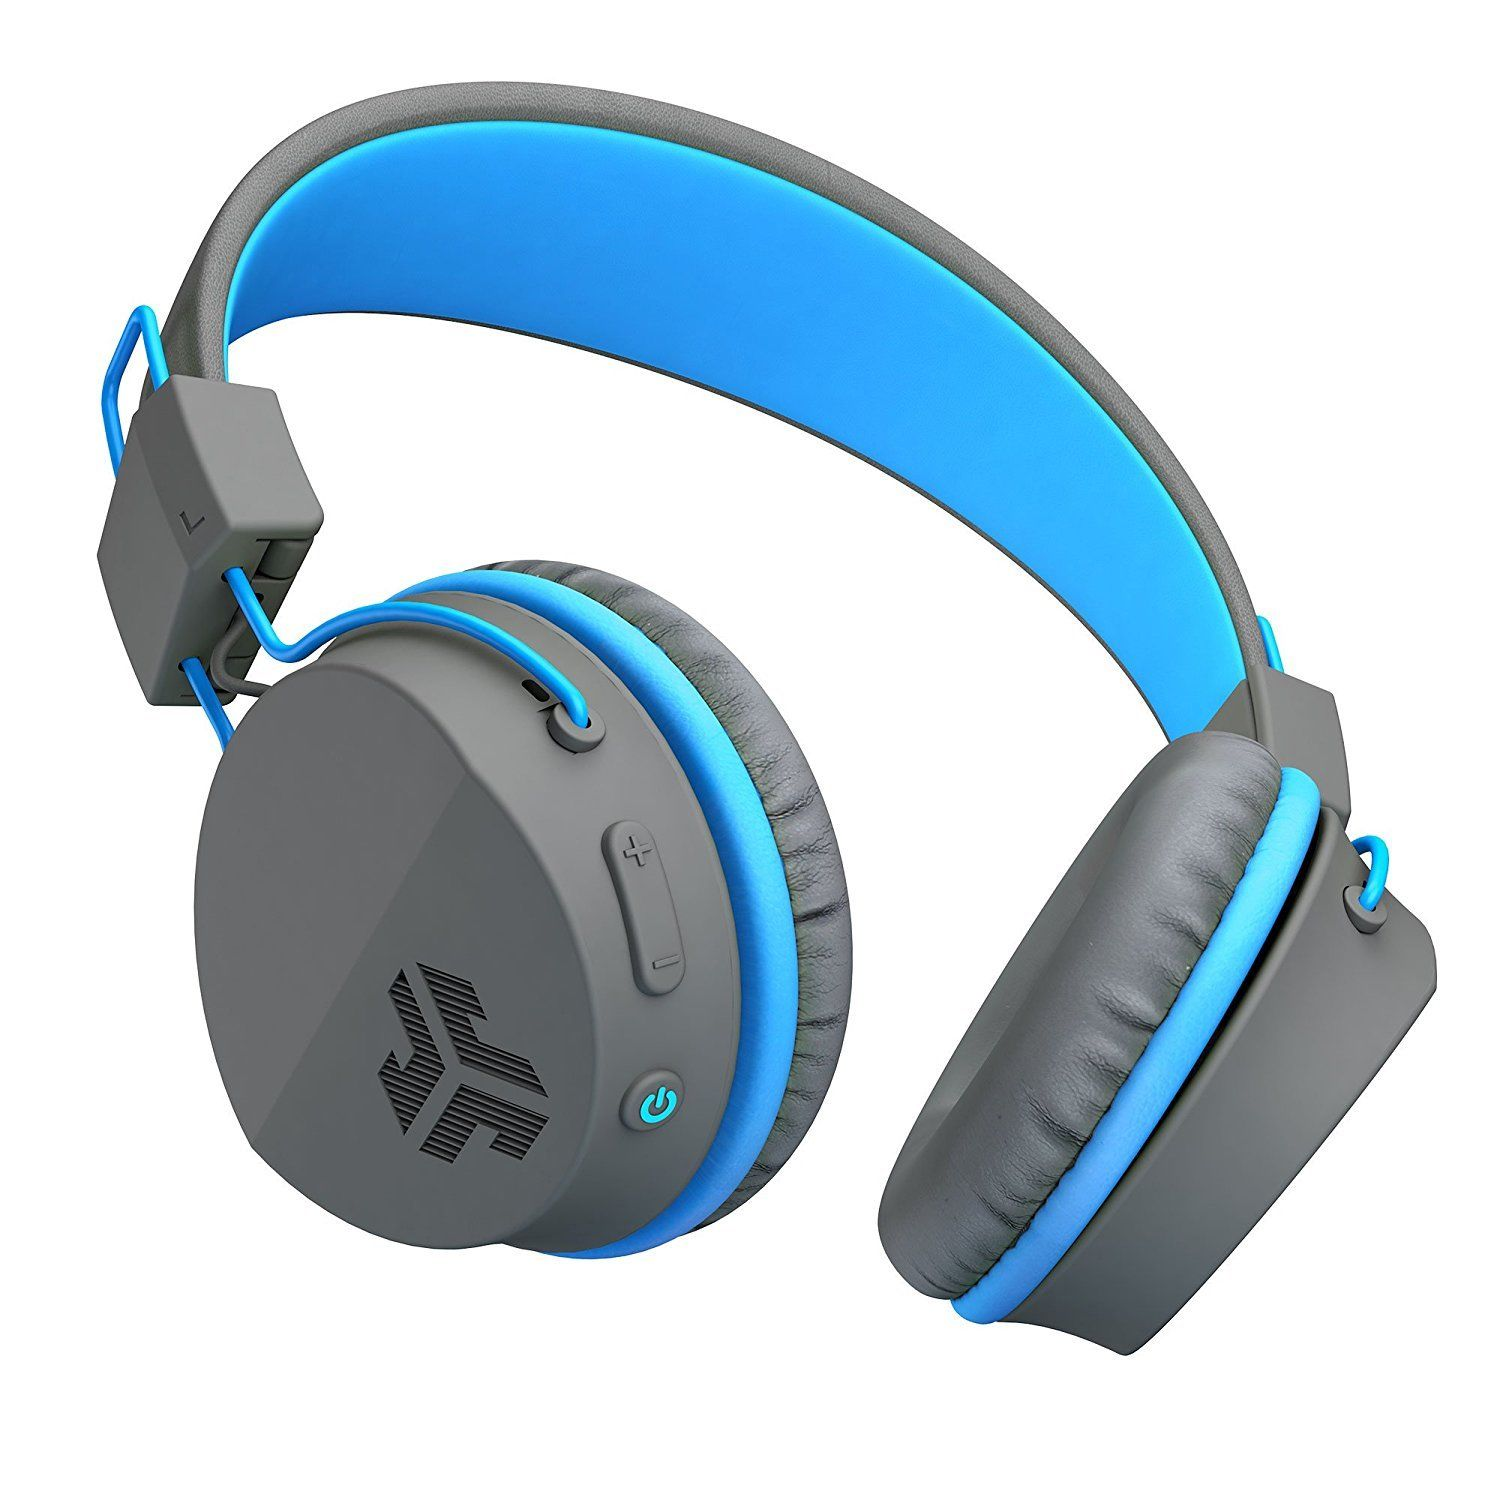 JLab Audio Neon Bluetooth Folding On-Ear Headphones with 13 Hour Bluetooth Playtime, 40mm Neodymium Drivers, C3 Sound and Crystal Clear Clarity, Gray/Blue (Refurbished)